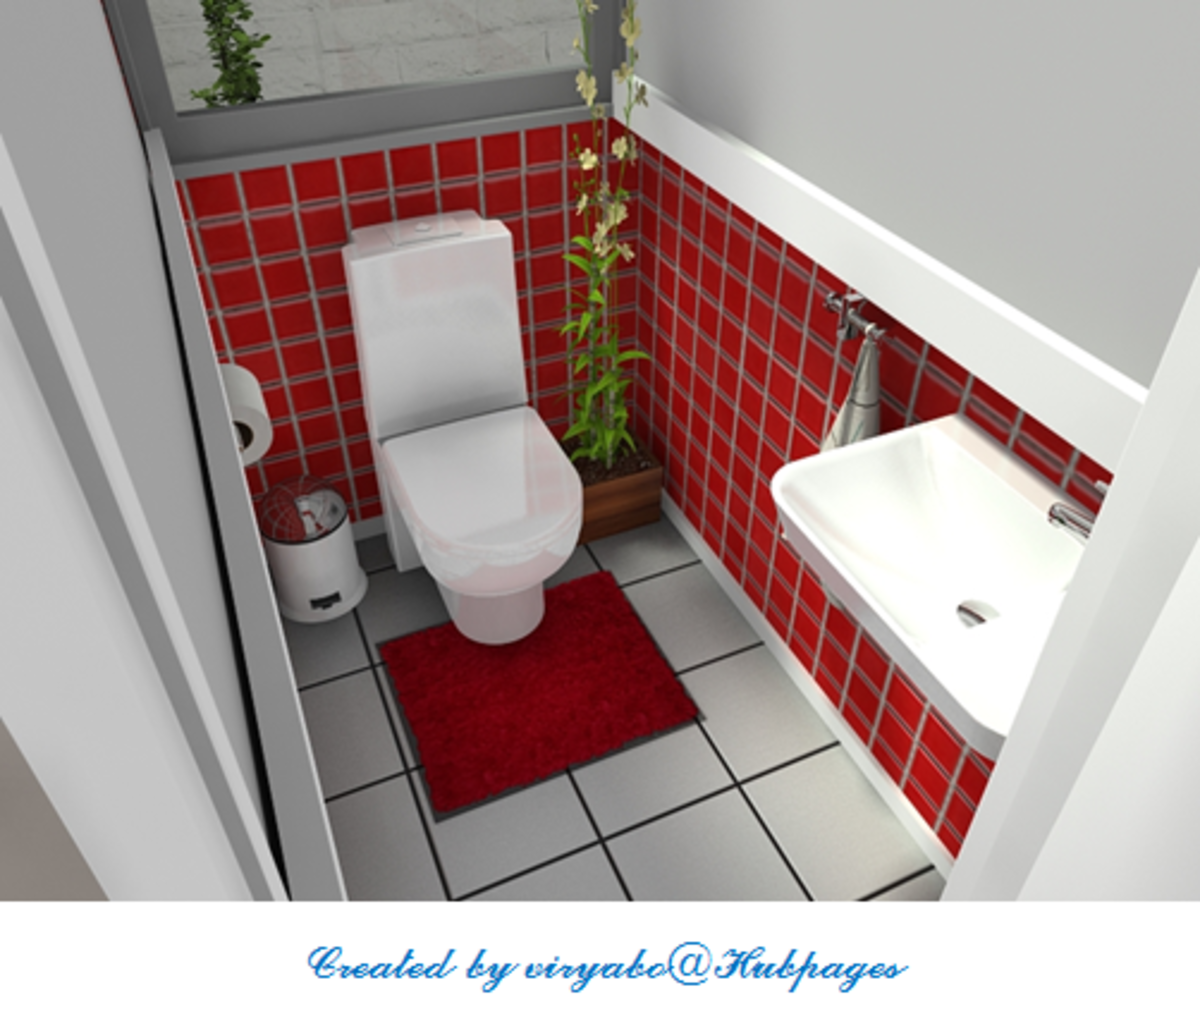 Best Kitchen And Bathroom Design Software Hubpages